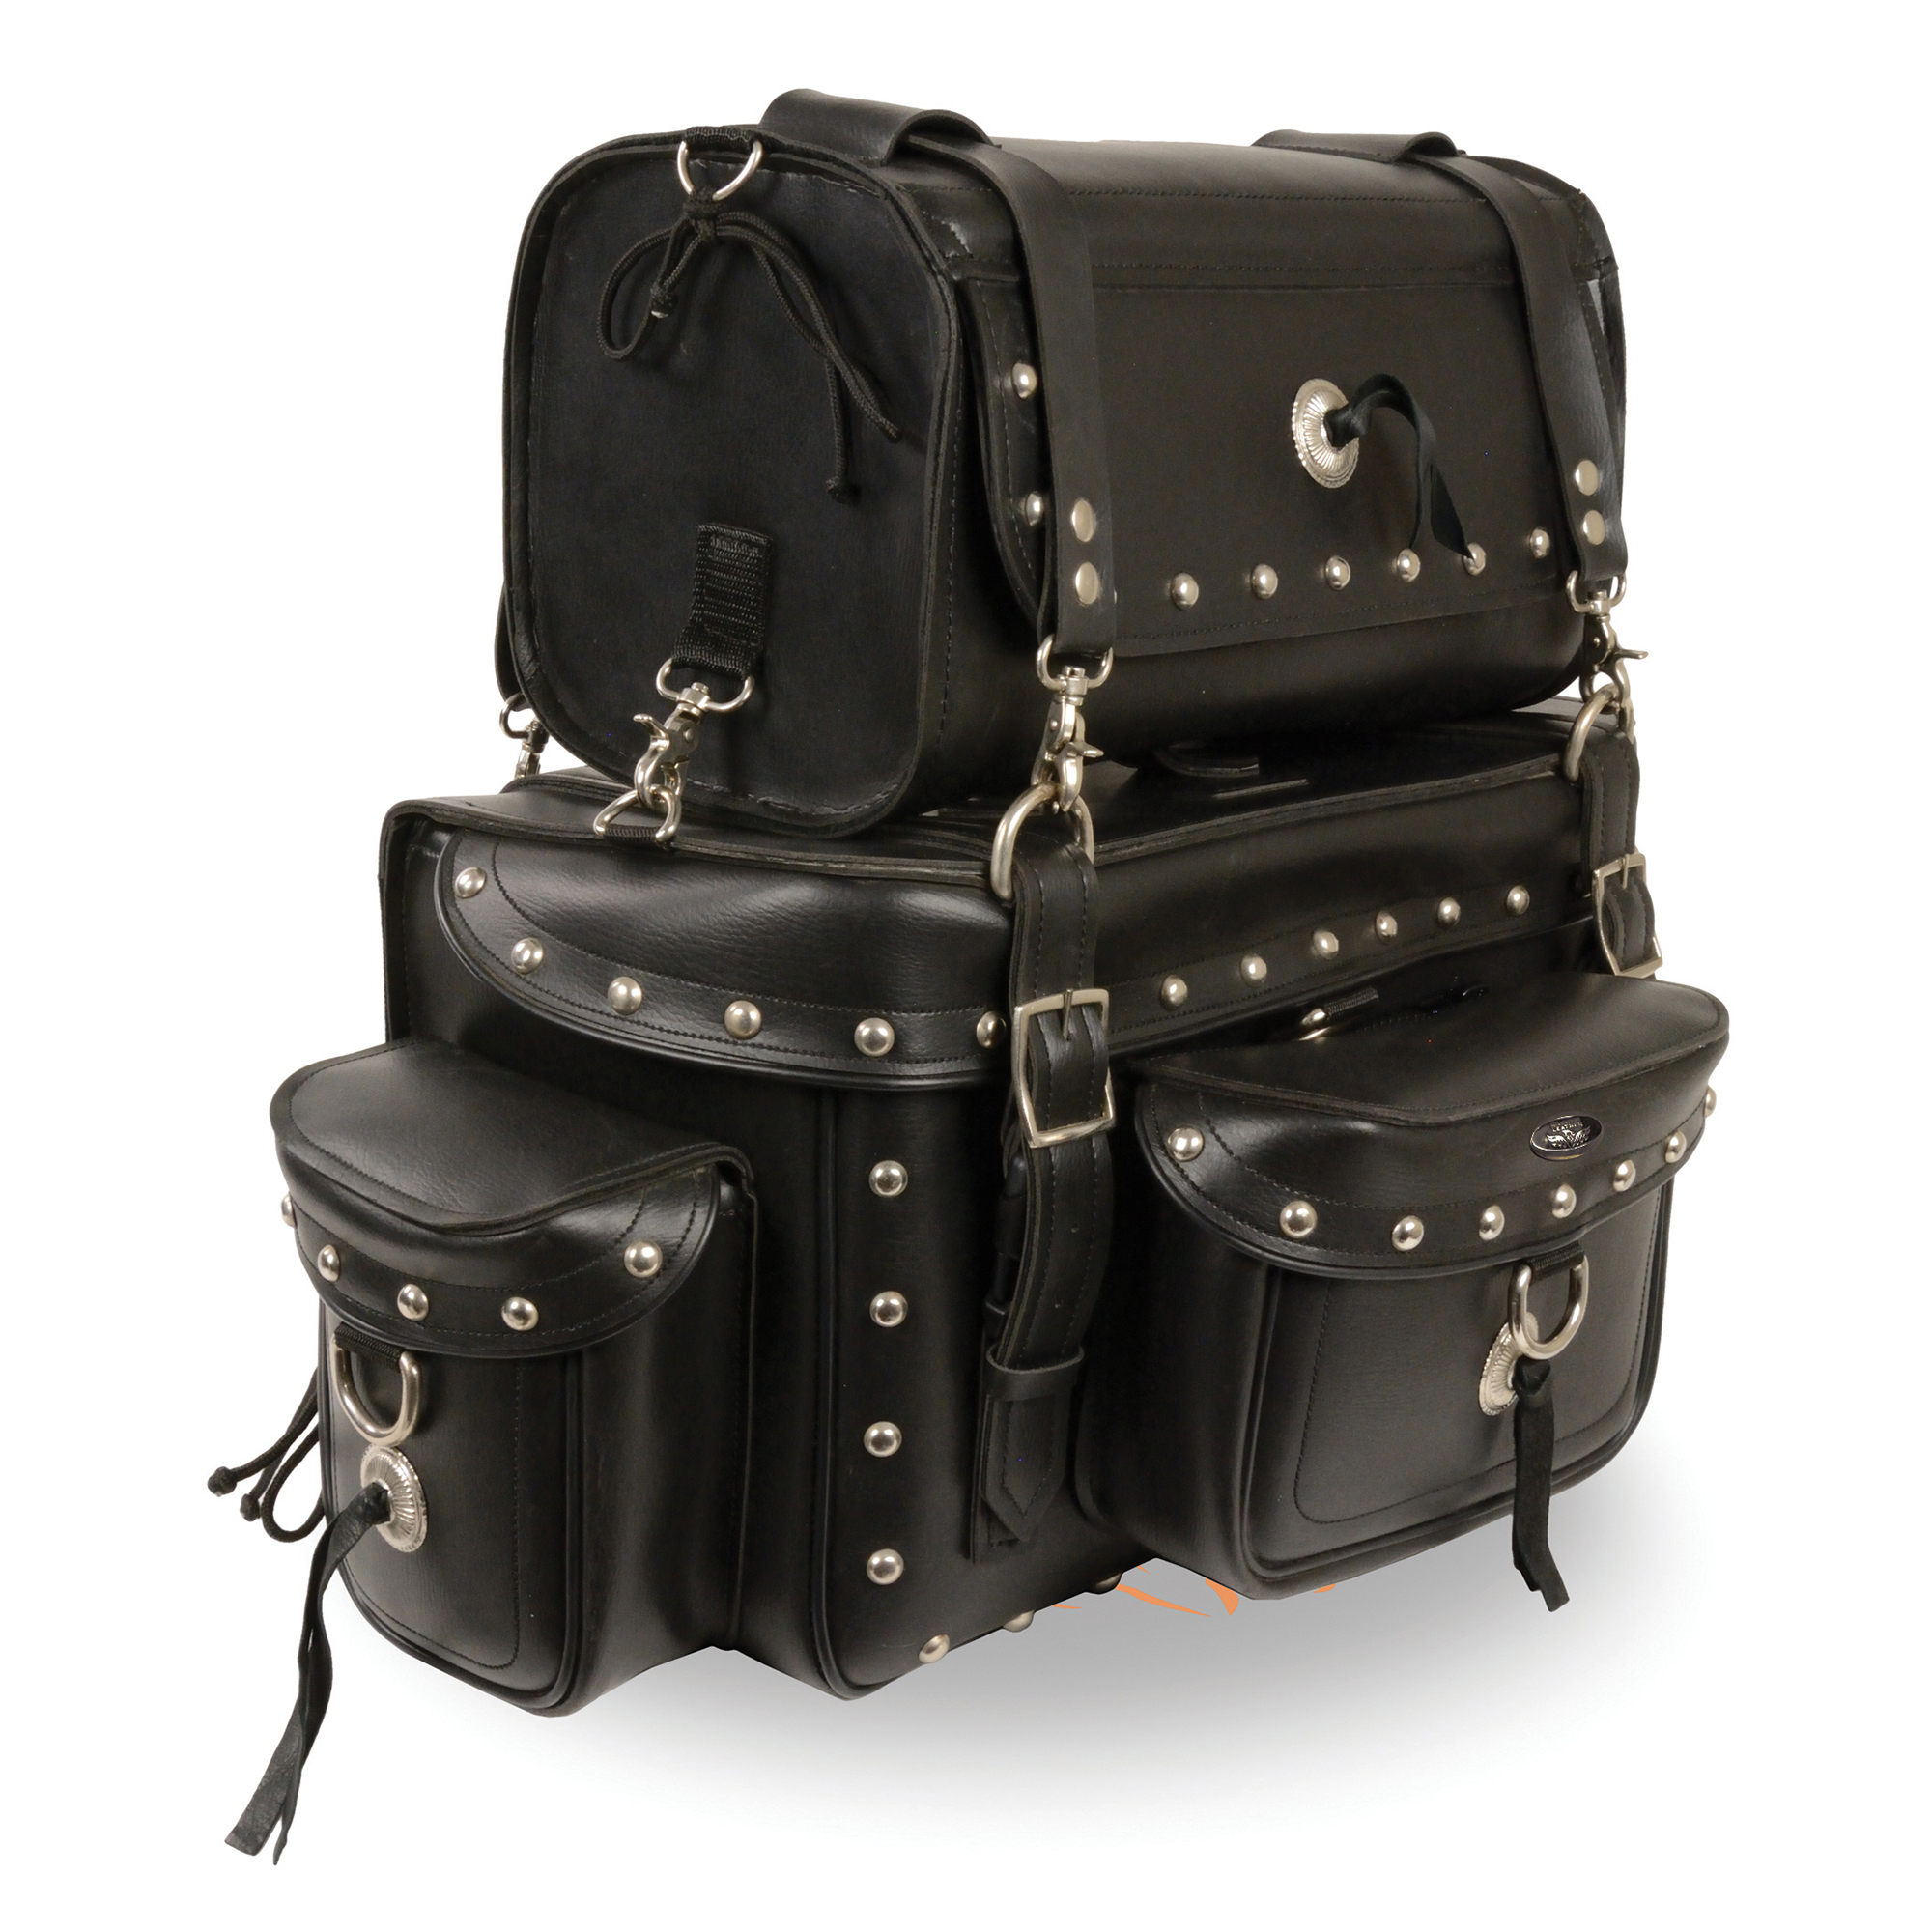 Dynamic Leather - Site - photo #23